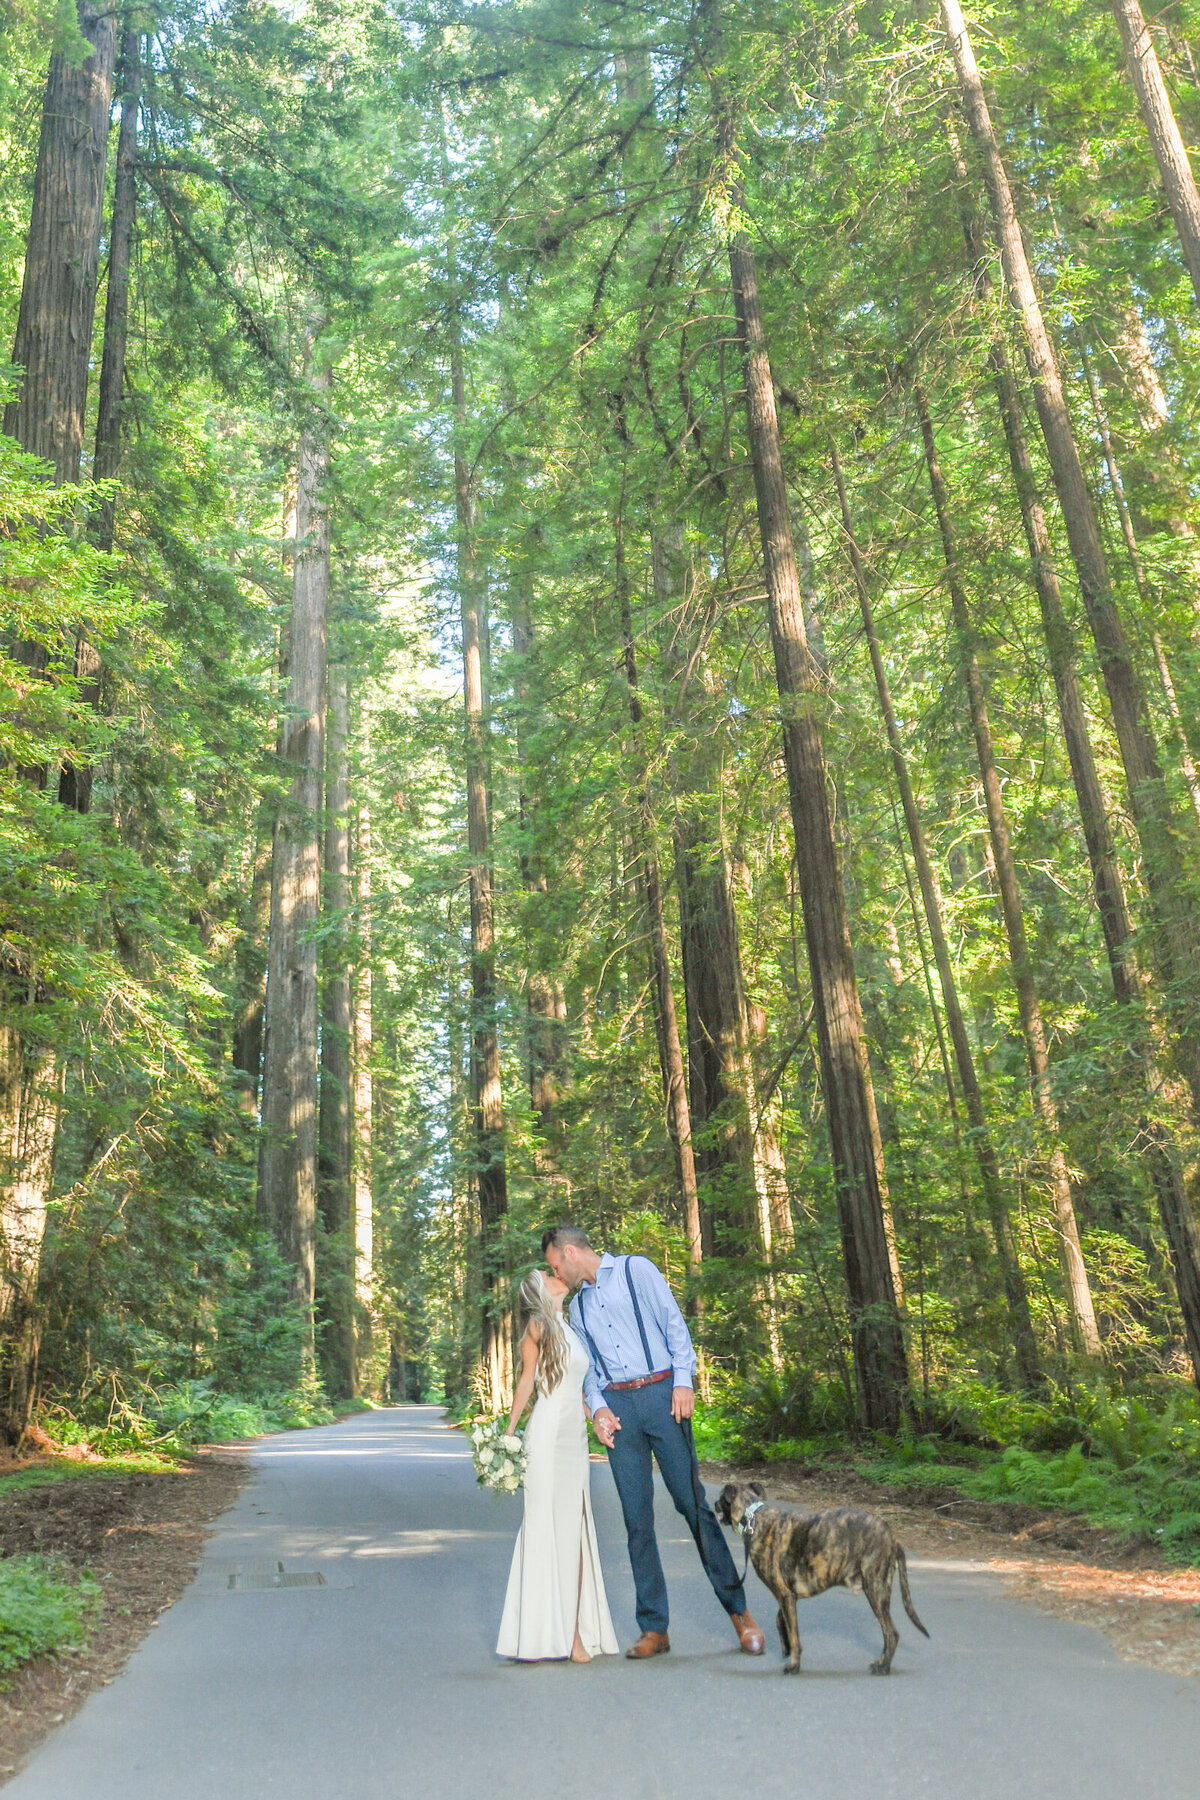 Humboldt-County-Elopement-Photographer-Redwoods-Avenue-of-the-Giants-Humboldt-Redwoods-Redwood-National-Park-Parky's-Pics-Coastal-Redwoods-Elopements-52